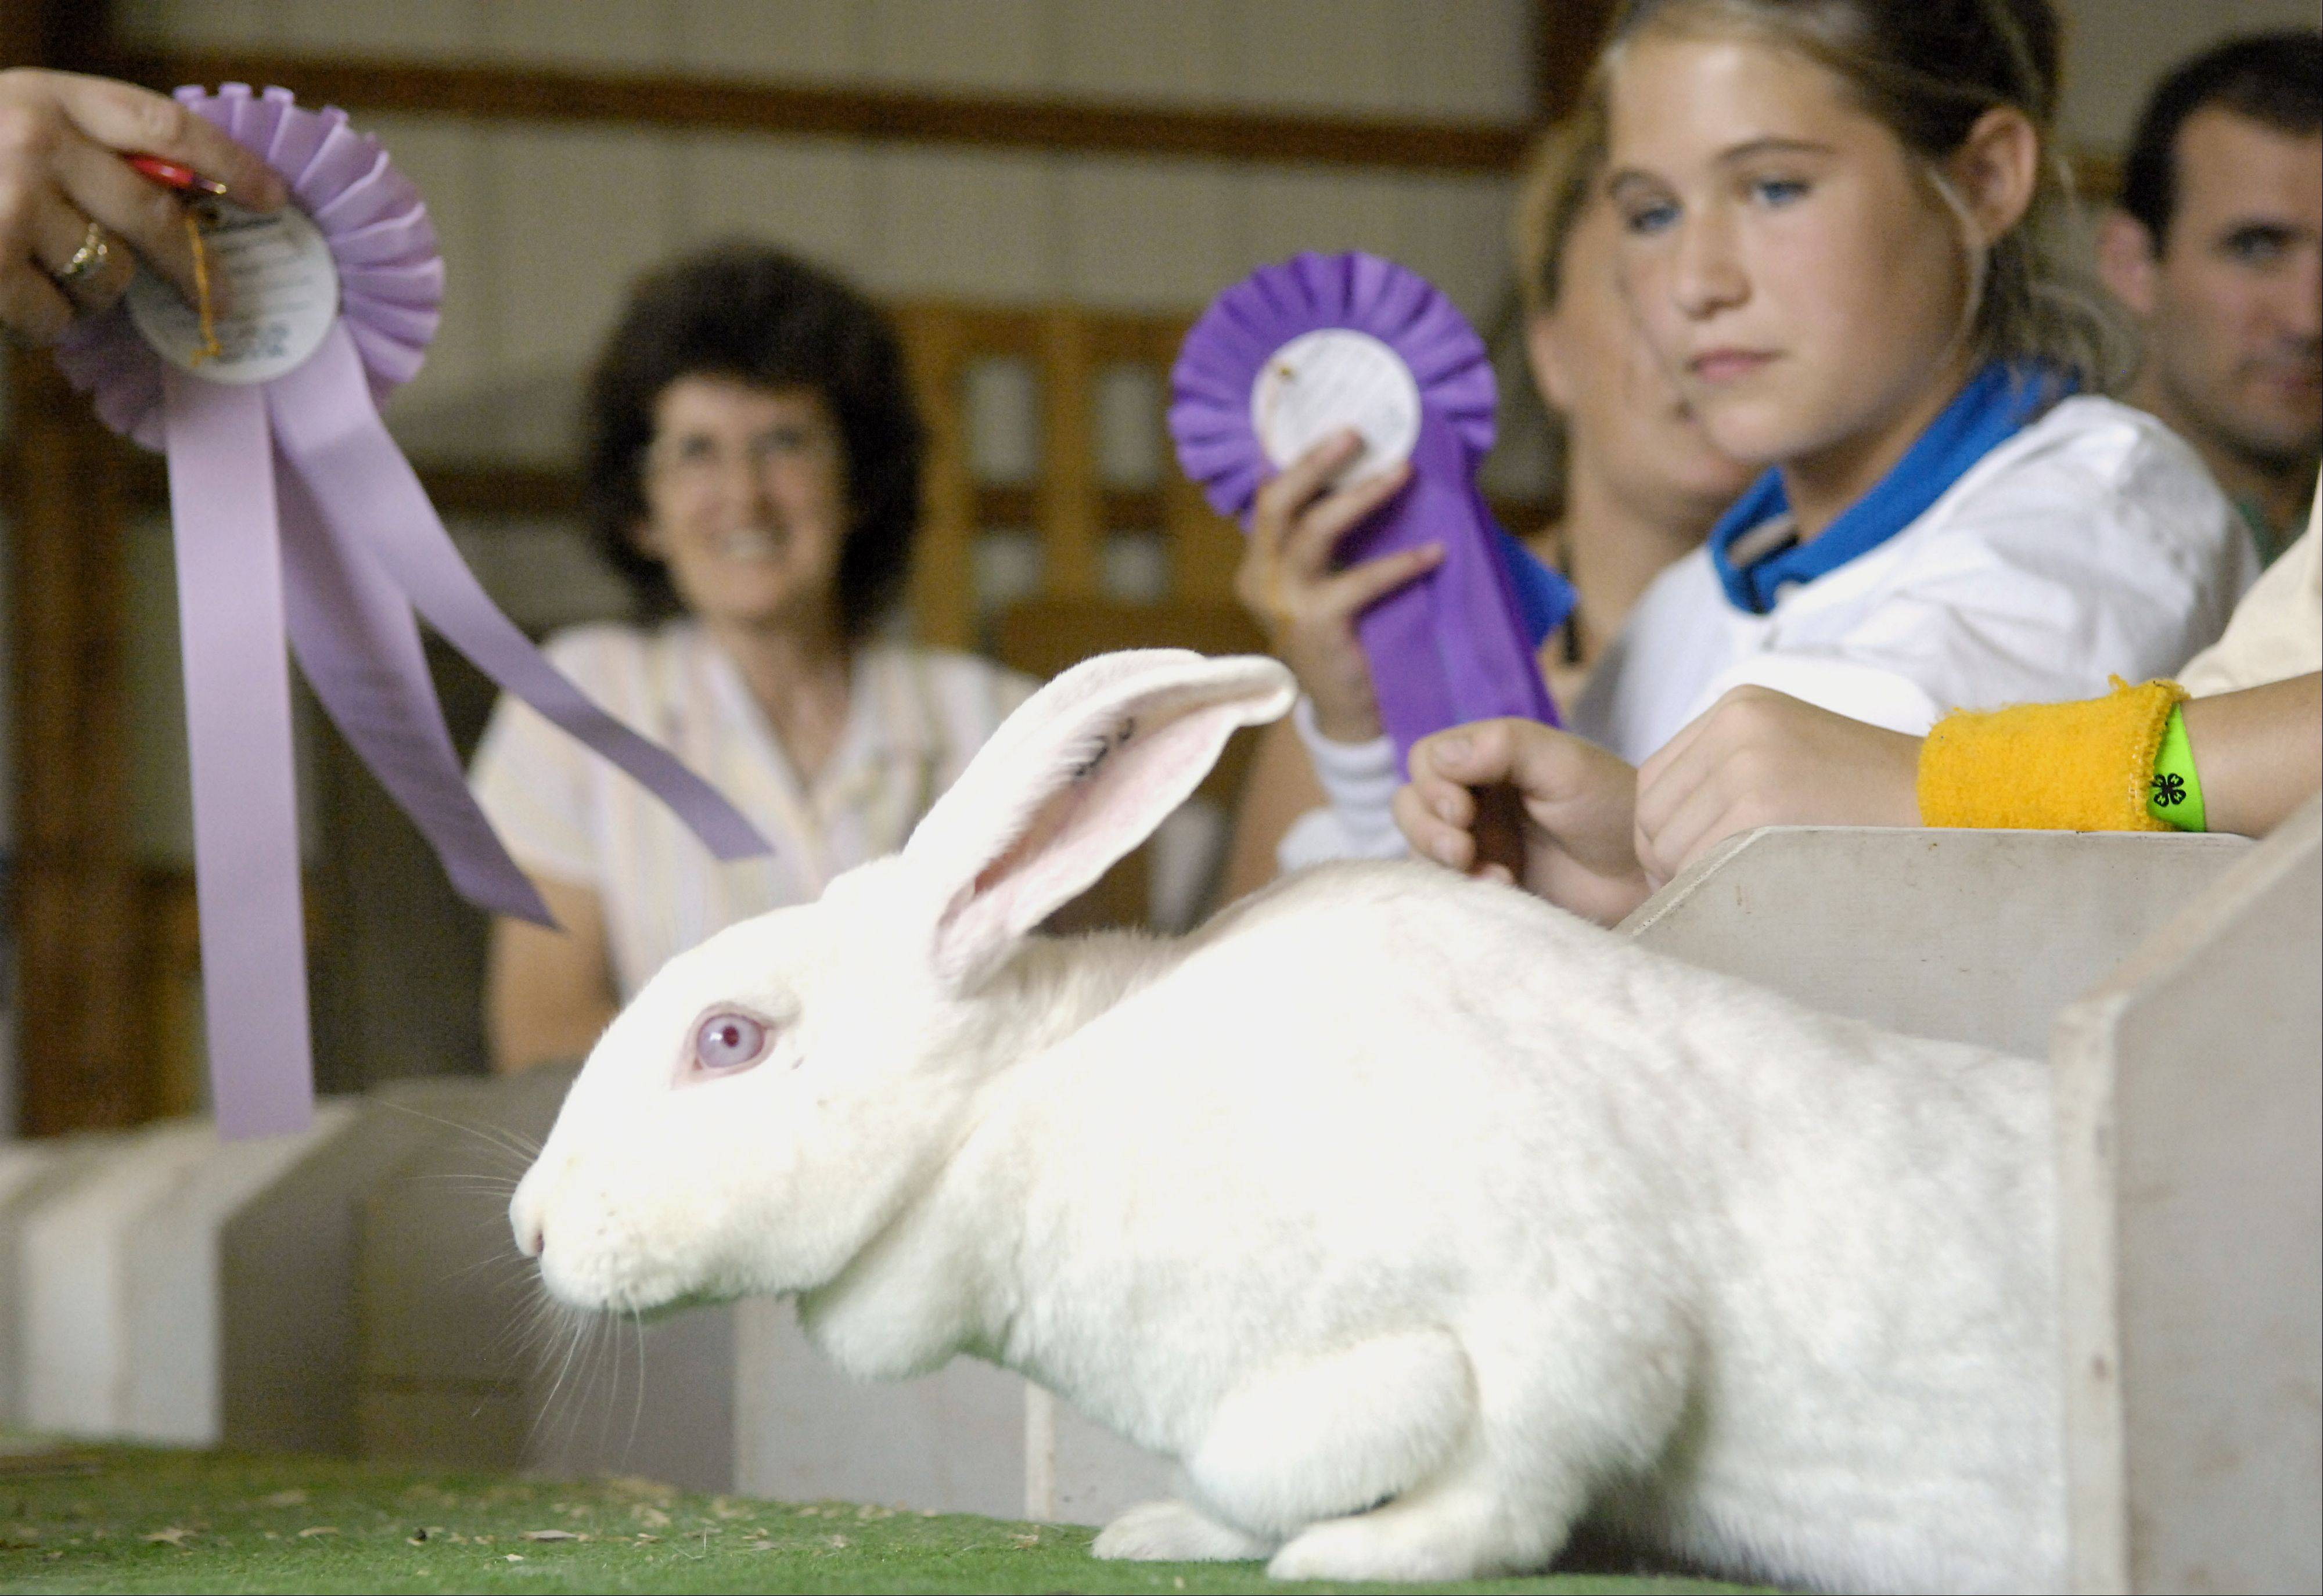 While holding a Grand Champion ribbon and also being awarded a Reserve Grand Champion ribbon as well, Karen Seegers, 11, of Harvard keeps an eye on one of her several New Zealand White rabbits during junior judging at the McHenry County Fair.